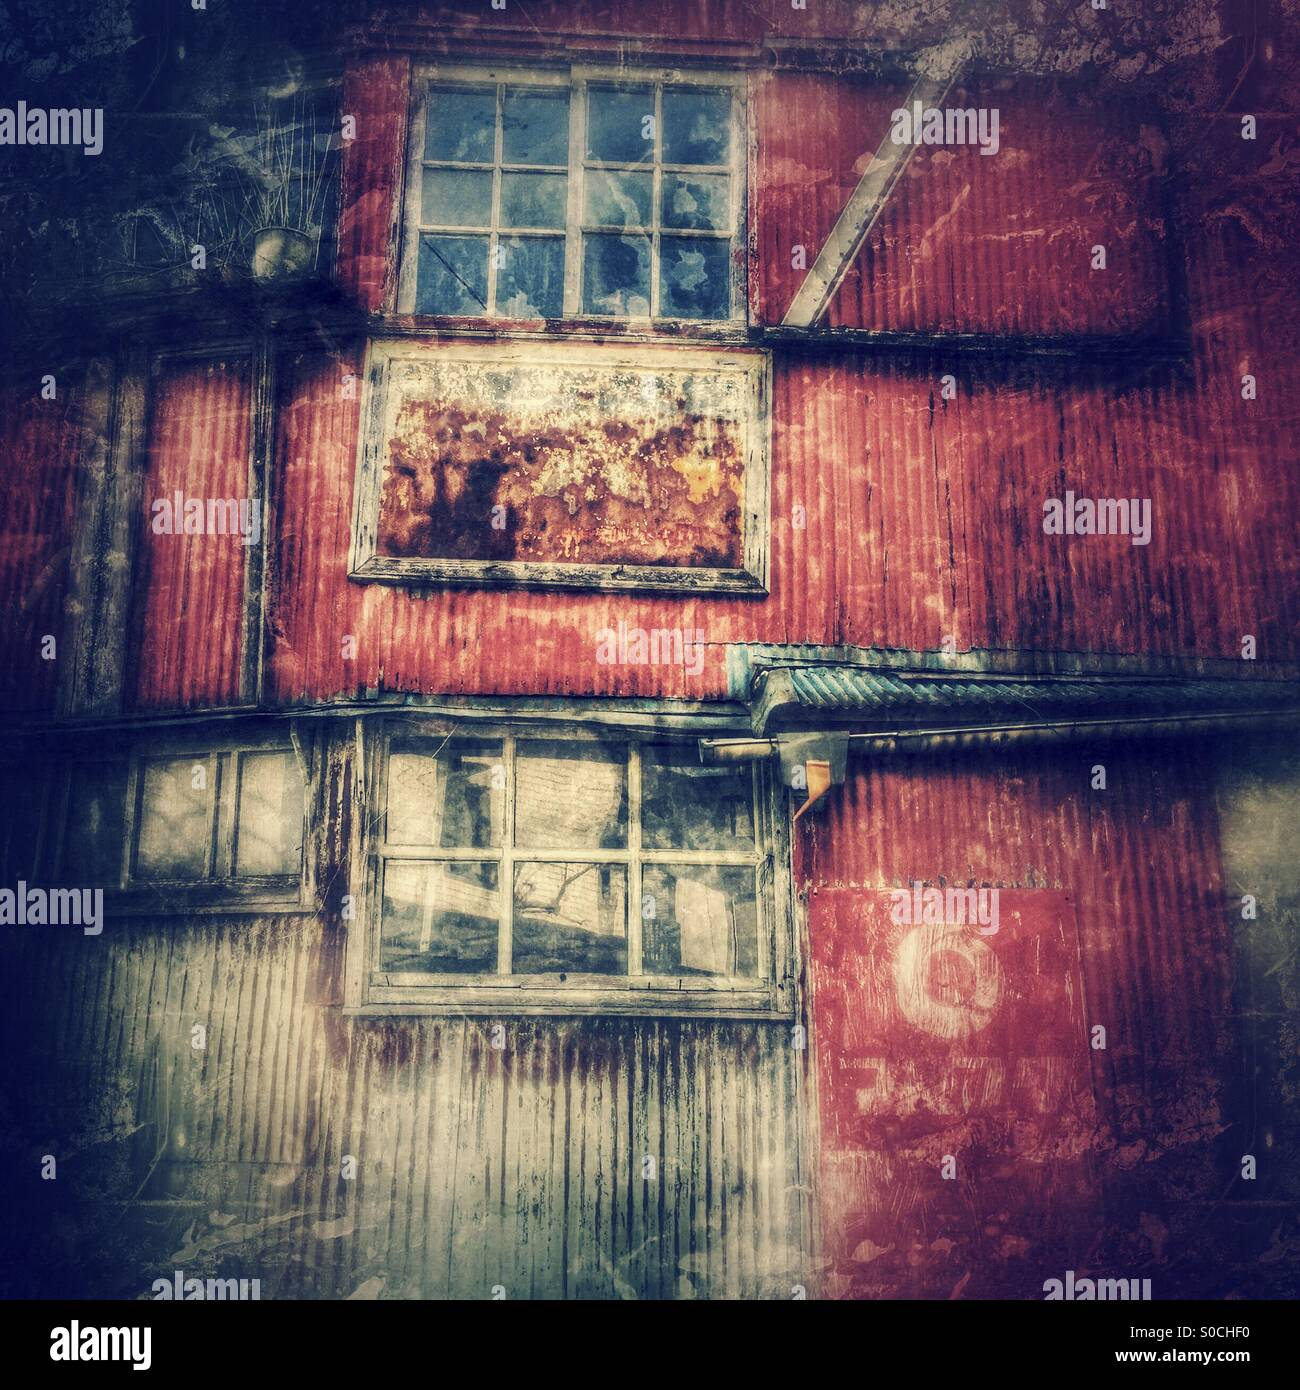 Grungy, rusting windows and corrugated metal wall of an old, abandoned, decrepit house doubling as a shop, with - Stock Image